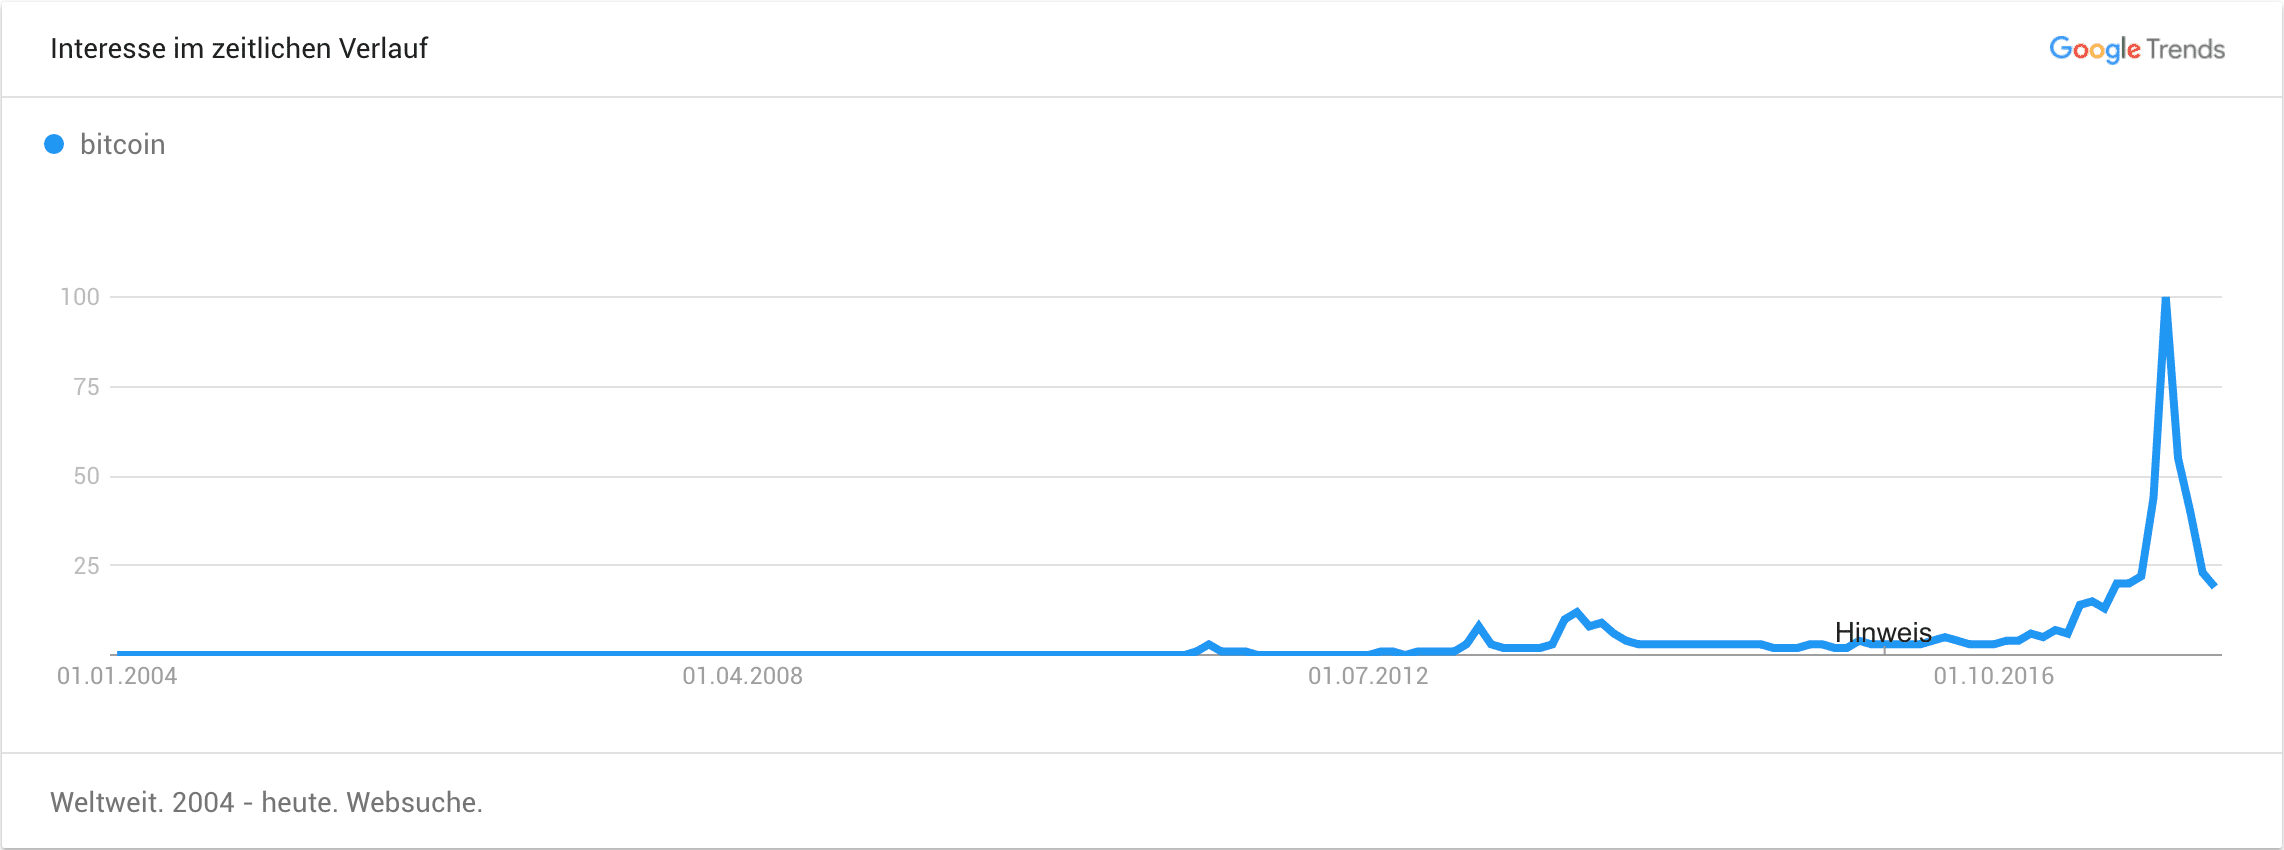 Interesse an Bitcoin bei Google Trends